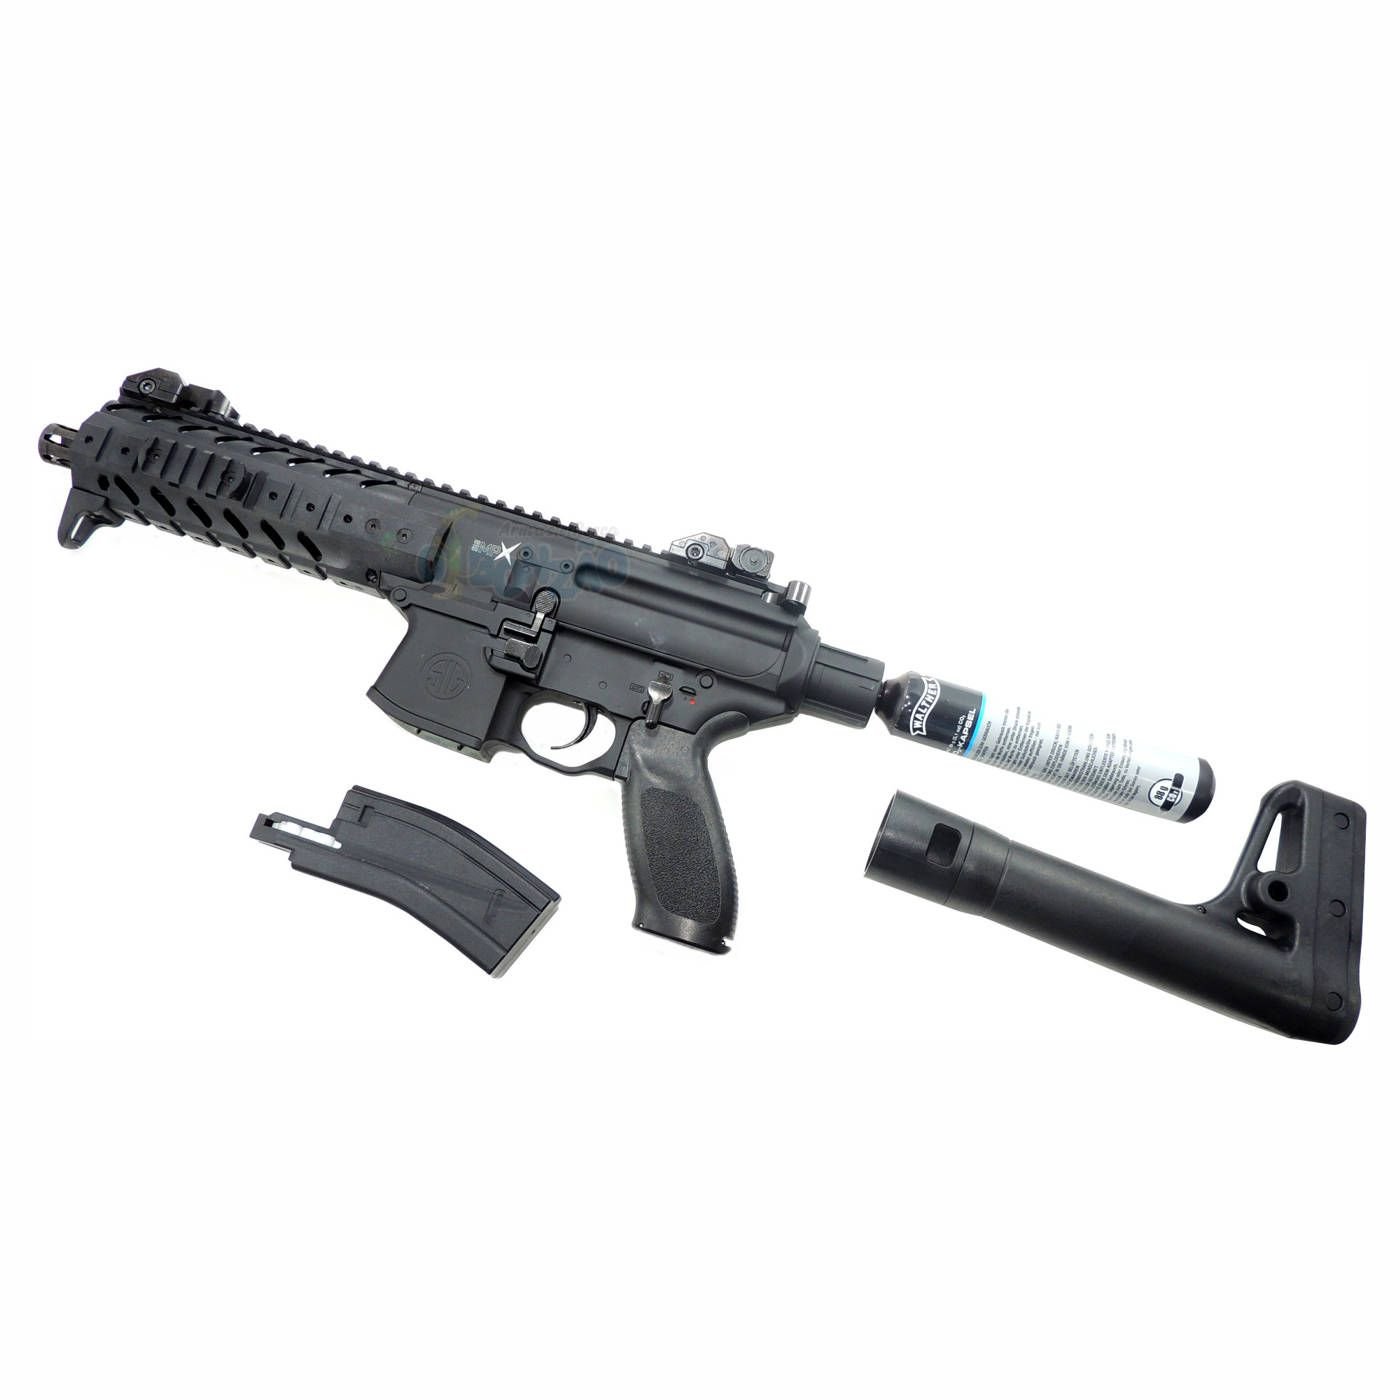 Rifle CO2 Sig Sauer MPX 4,5mm 30 Tiros + Cilindro Co2 88g